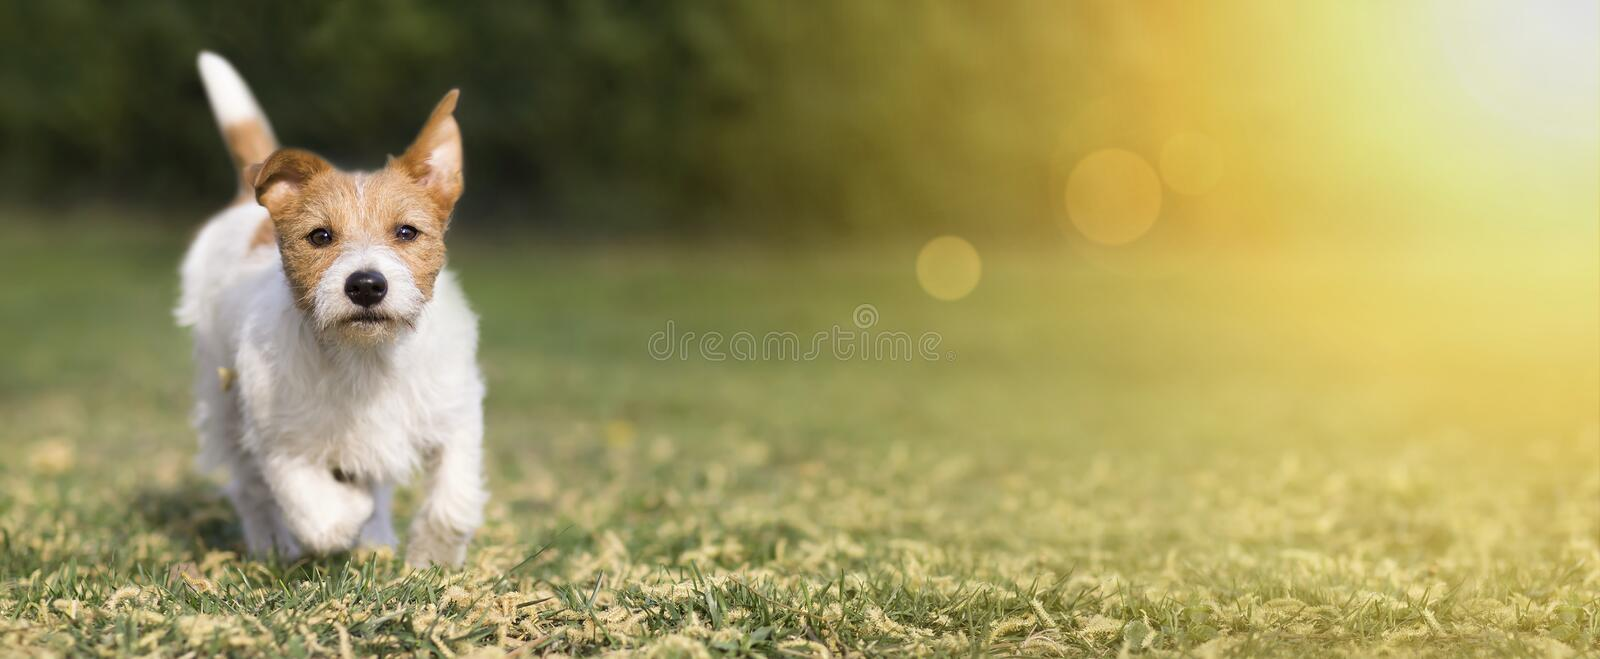 Spring, summer concept - cute happy pet dog puppy playing in the grass, web banner stock images